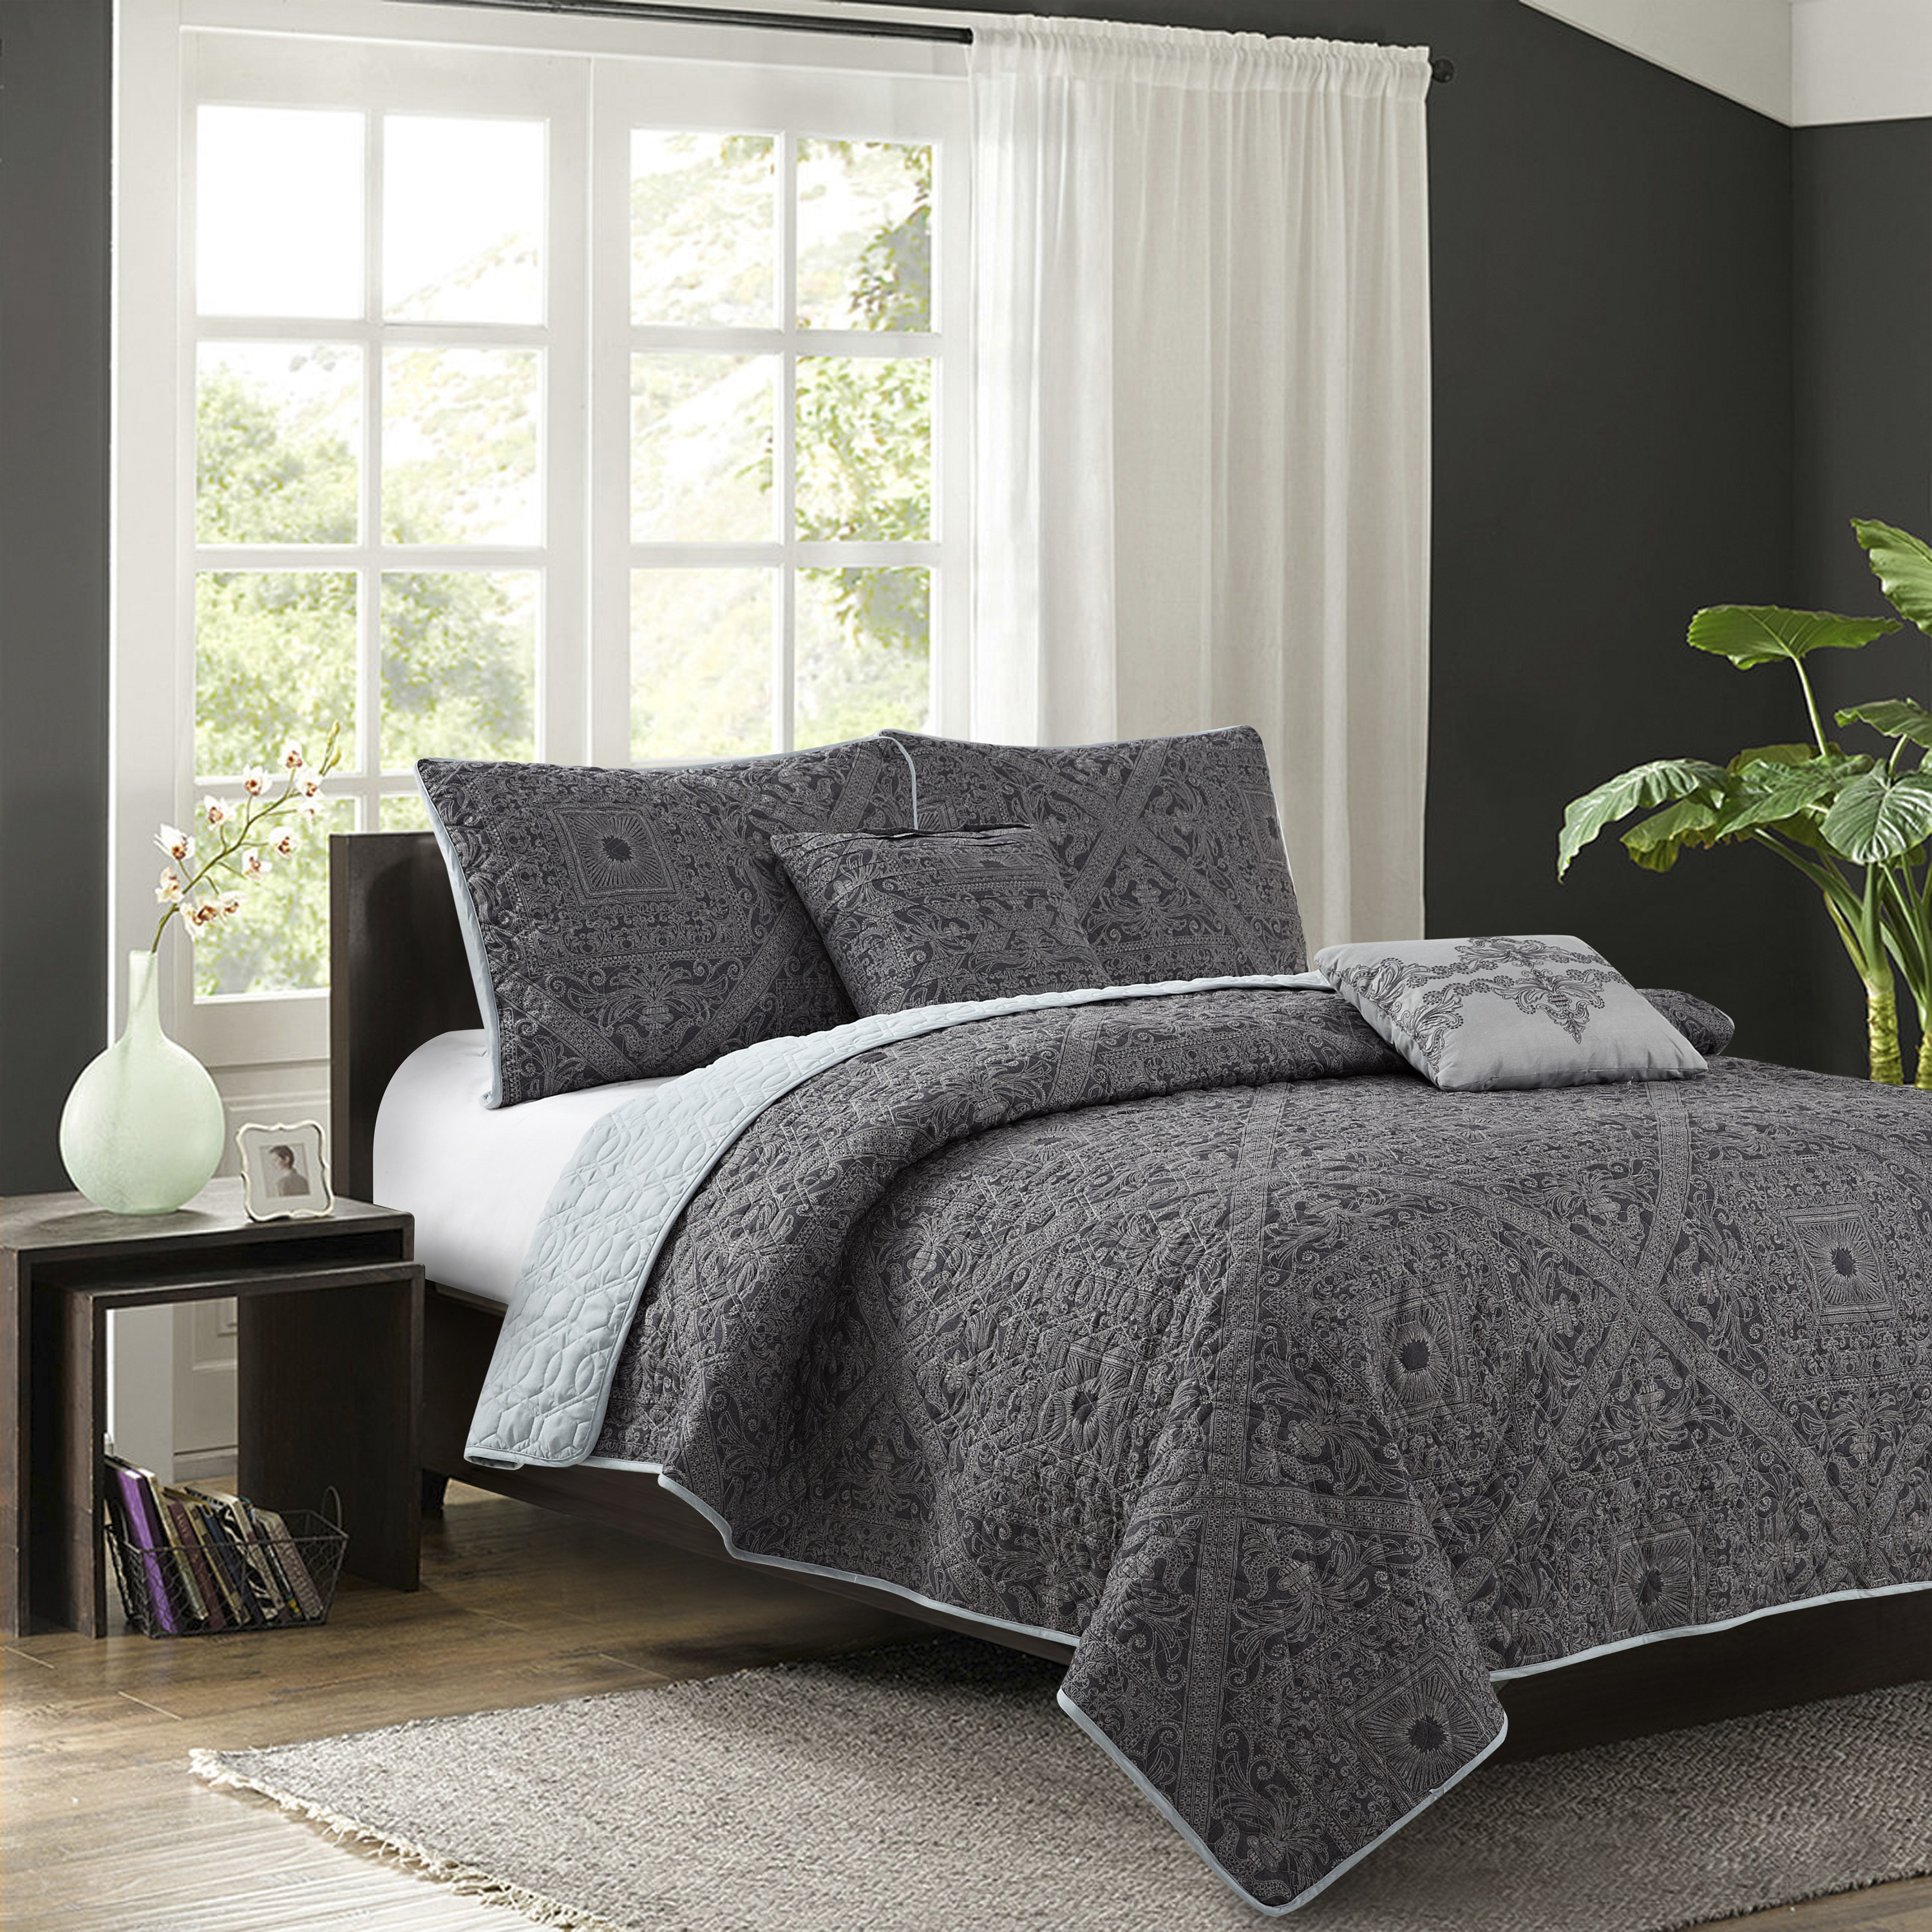 Bastille Grey 5-piece Quilt Set by New Sega Home Textiles